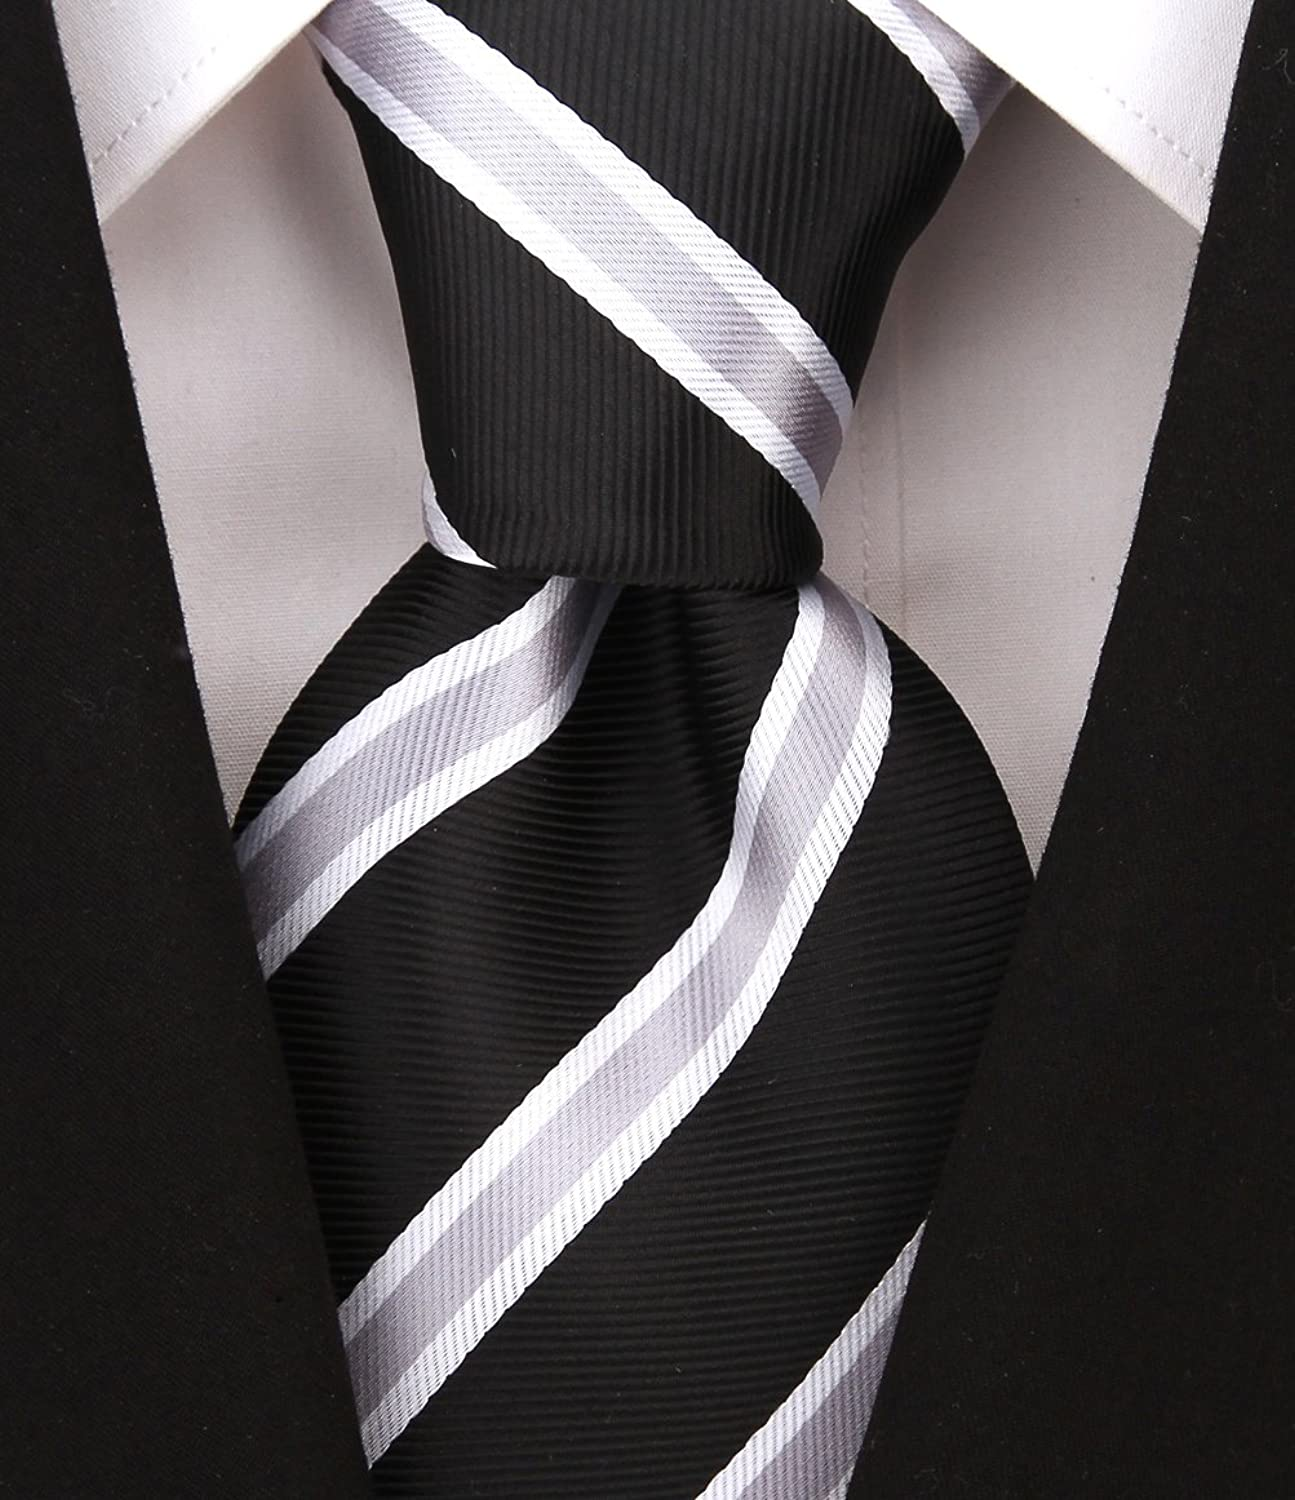 Victorian Mens Ties, Ascot, Cravat, Bow Tie, Necktie Scott Allan Mens Striped Necktie $11.99 AT vintagedancer.com